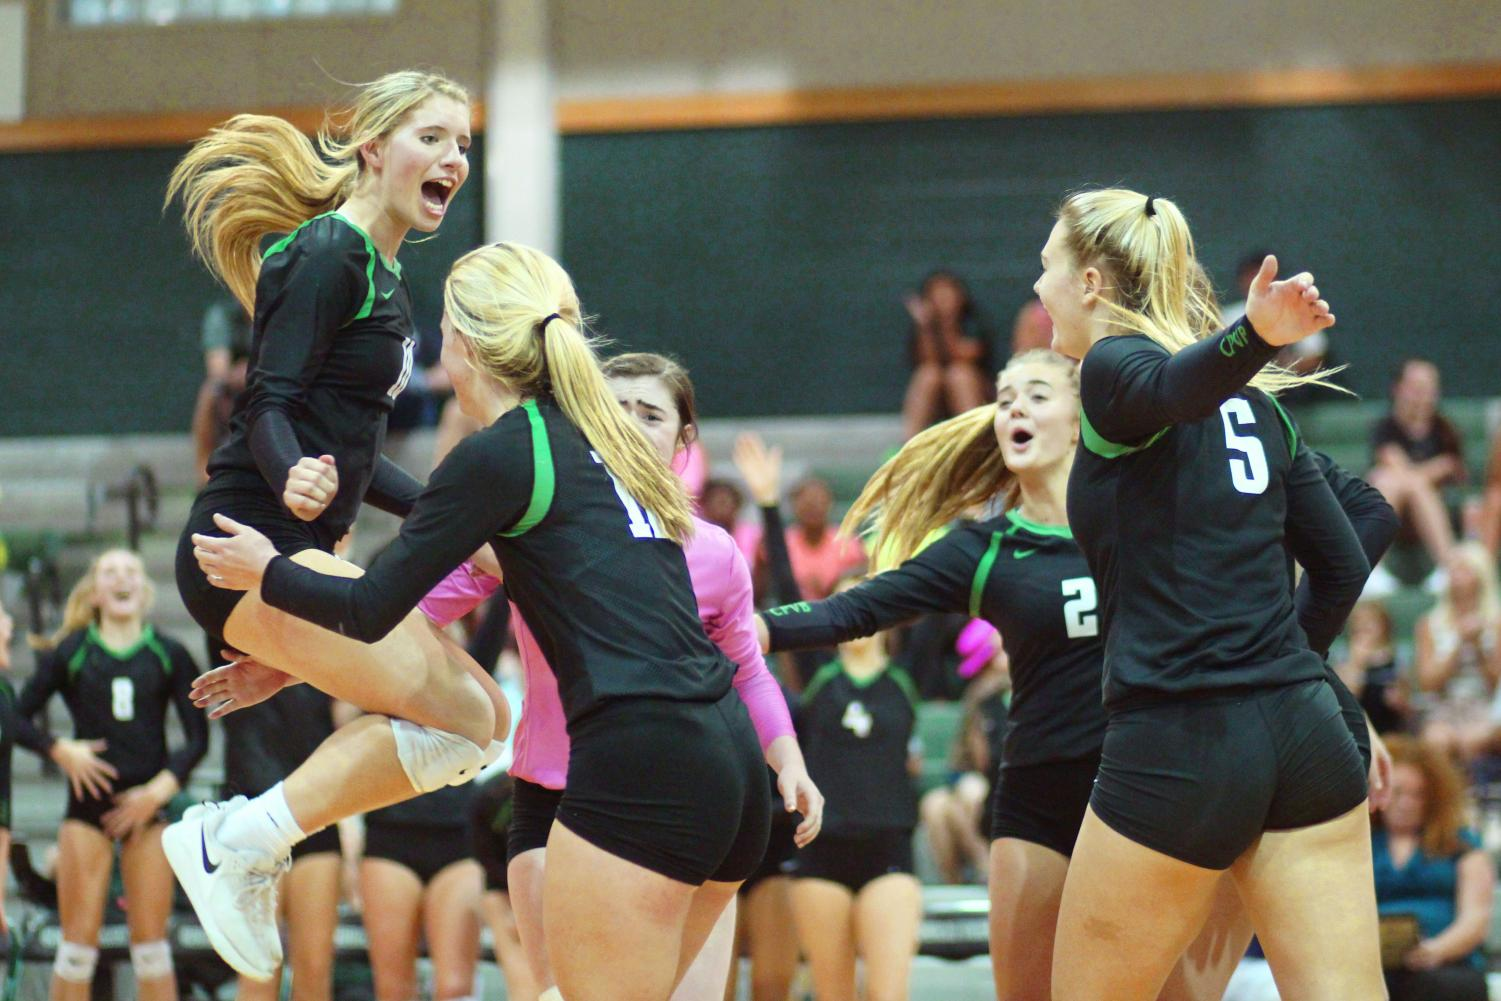 Jumping for joy, the volleyball team celebrates scoring. Wins like these are what propelled the team to Regional Semifinals.